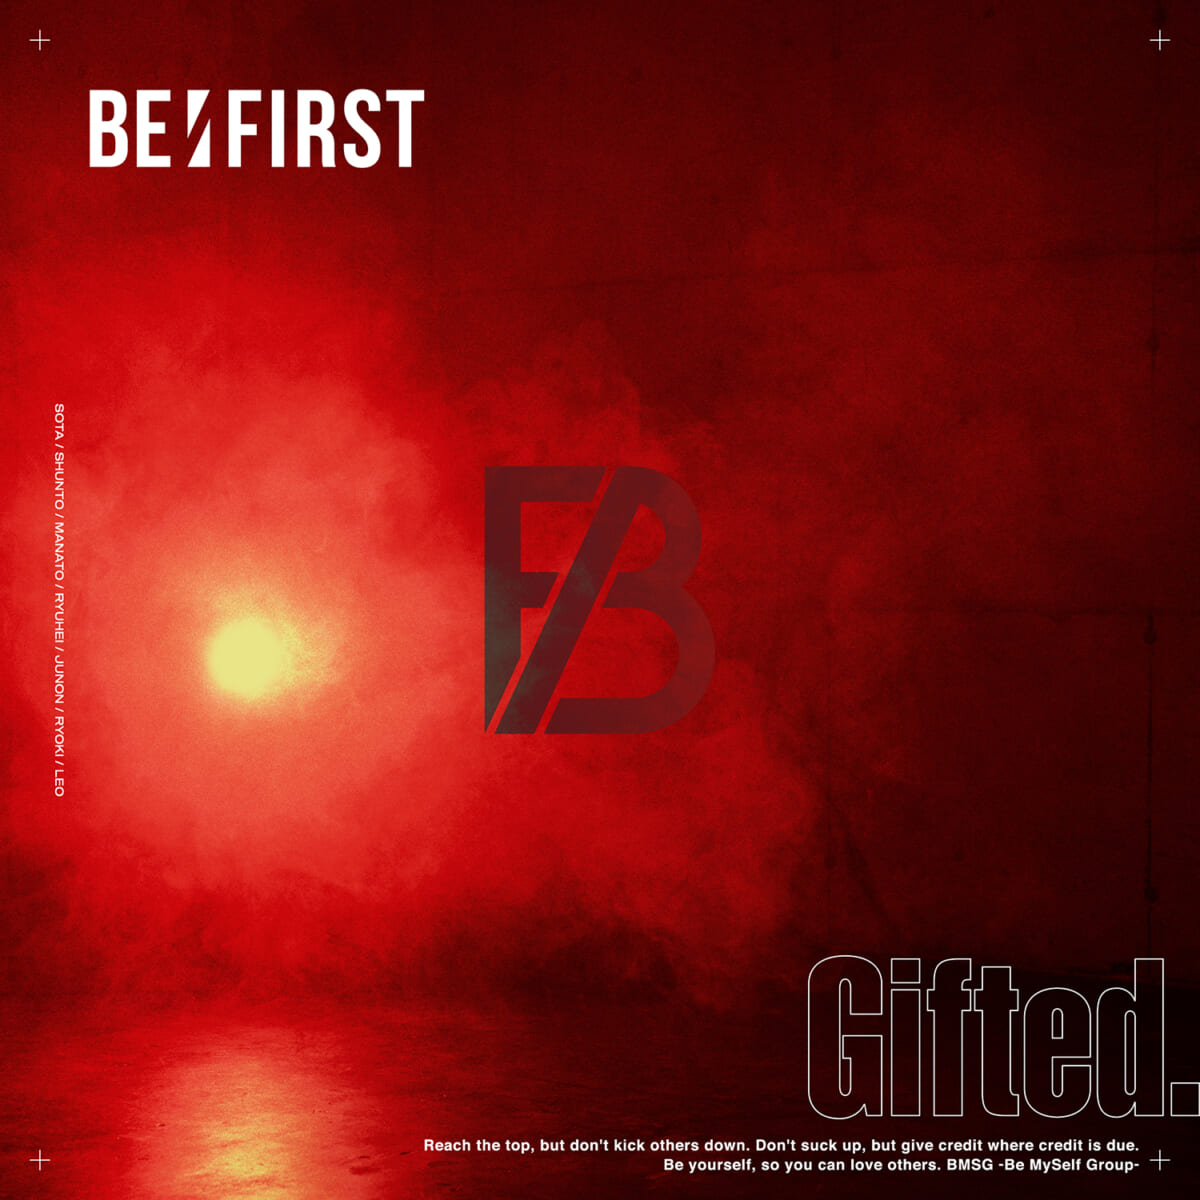 BE:FIRST「Gifted.」